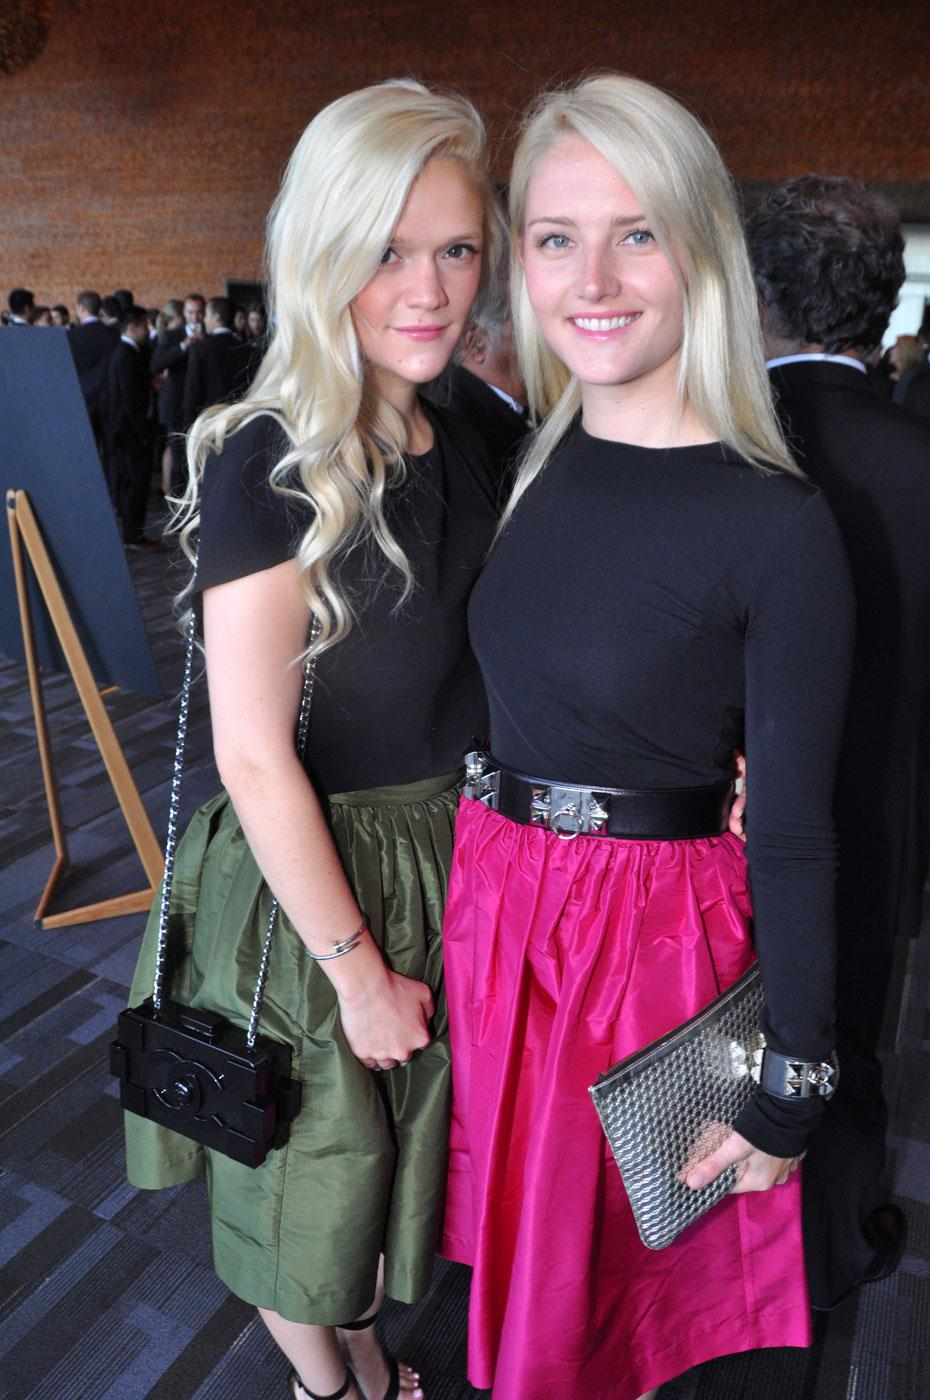 Skot Apparel Partyskirts co-founders Mariel Armstrong and Lauren Armstrong.